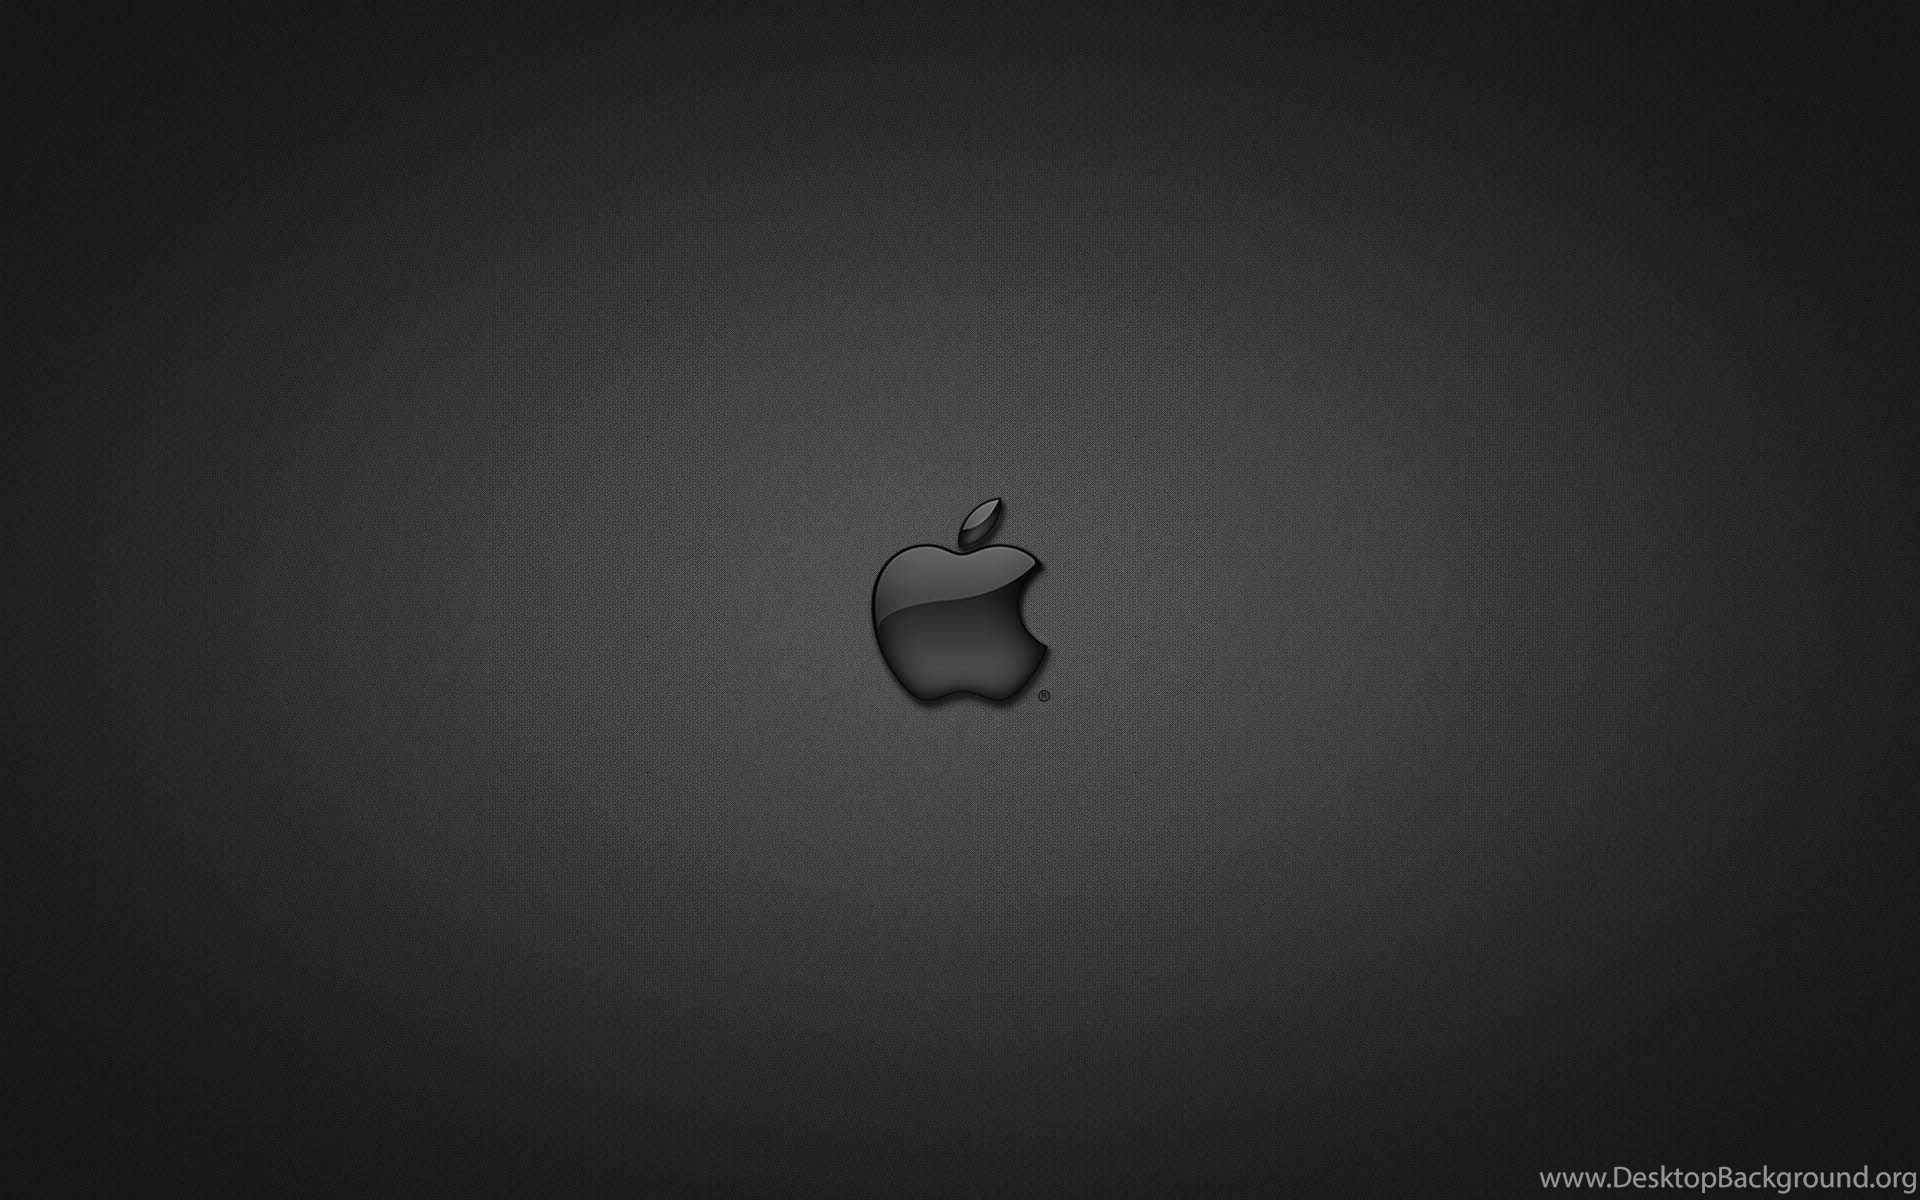 apple in glass black hd wallpapers free hd wallpapers download